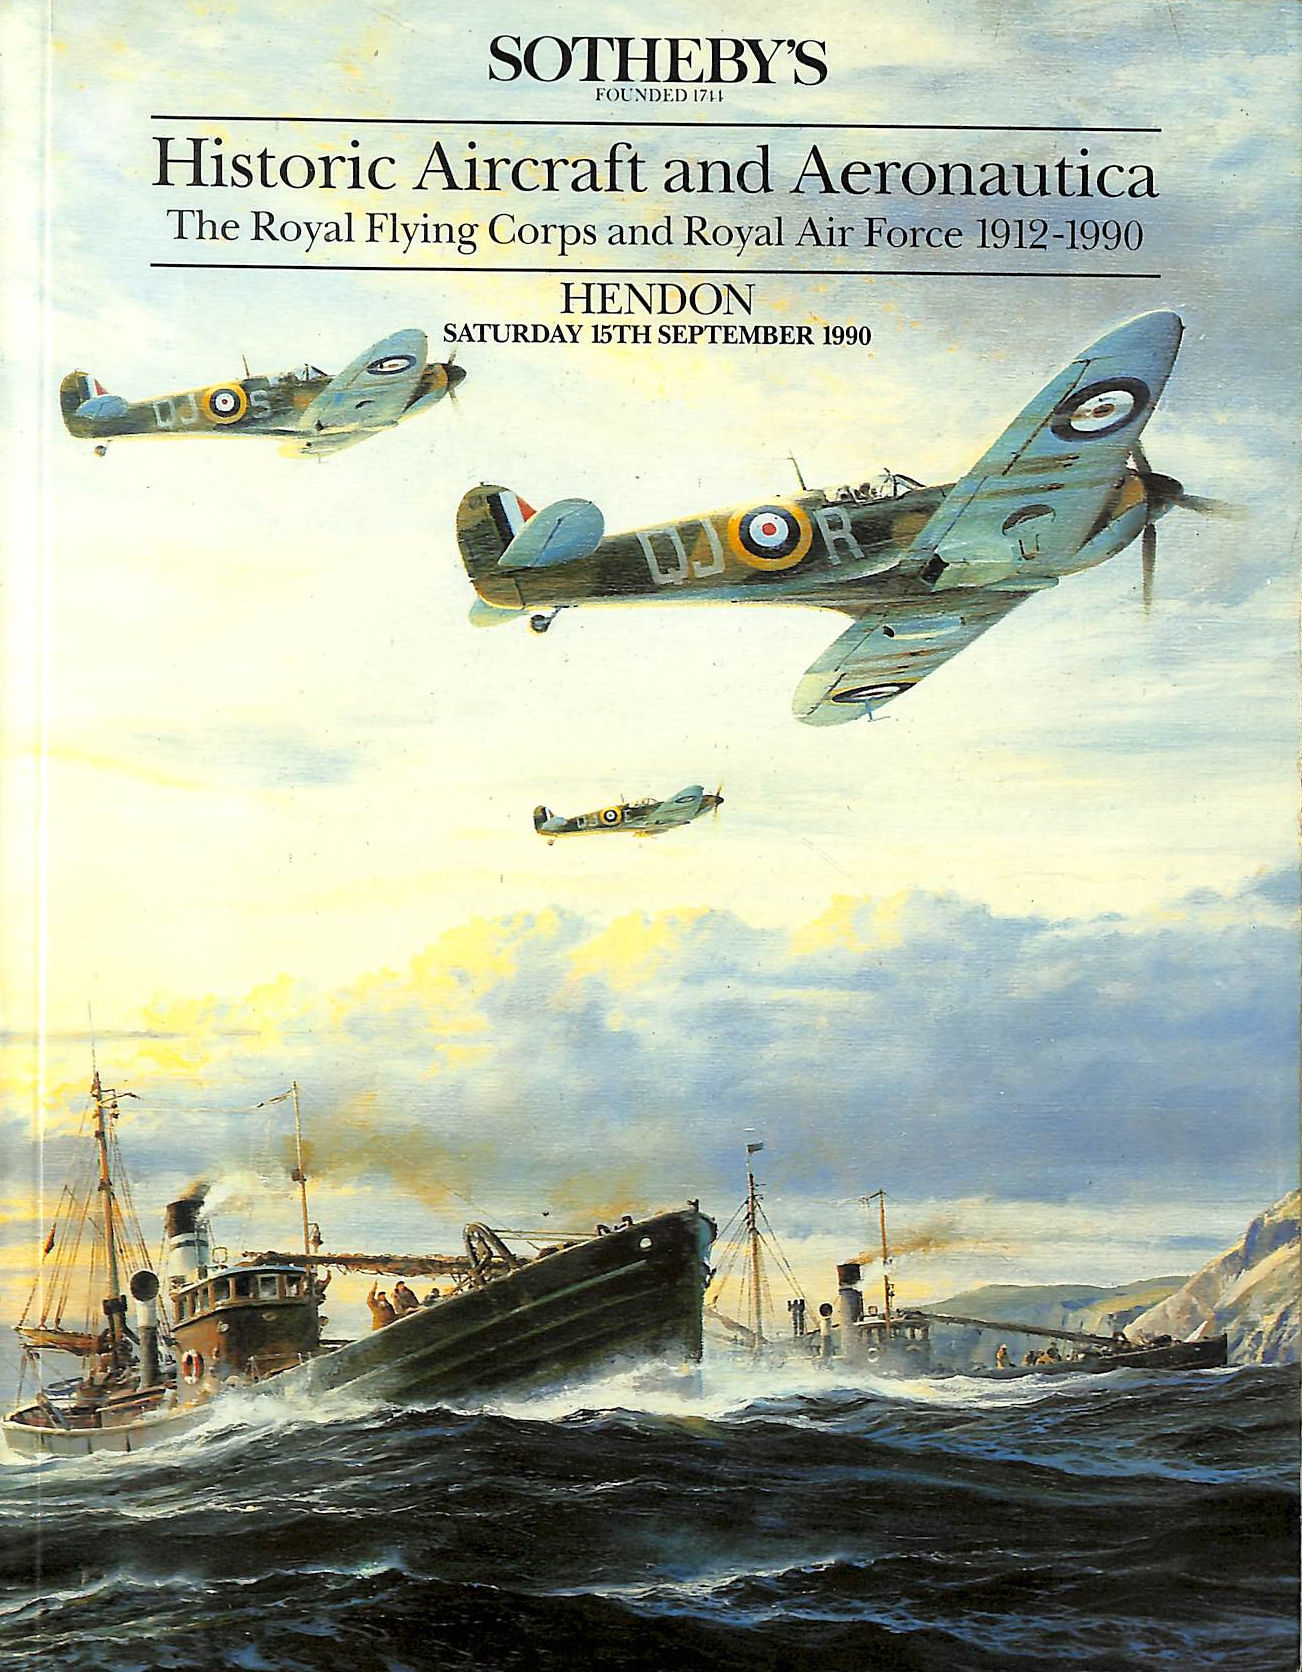 Image for Sothebys:  Historic Aircraft and Aeronautica - The Royal Flying Corps and Royal Air Force 1912-1990 - Hendon